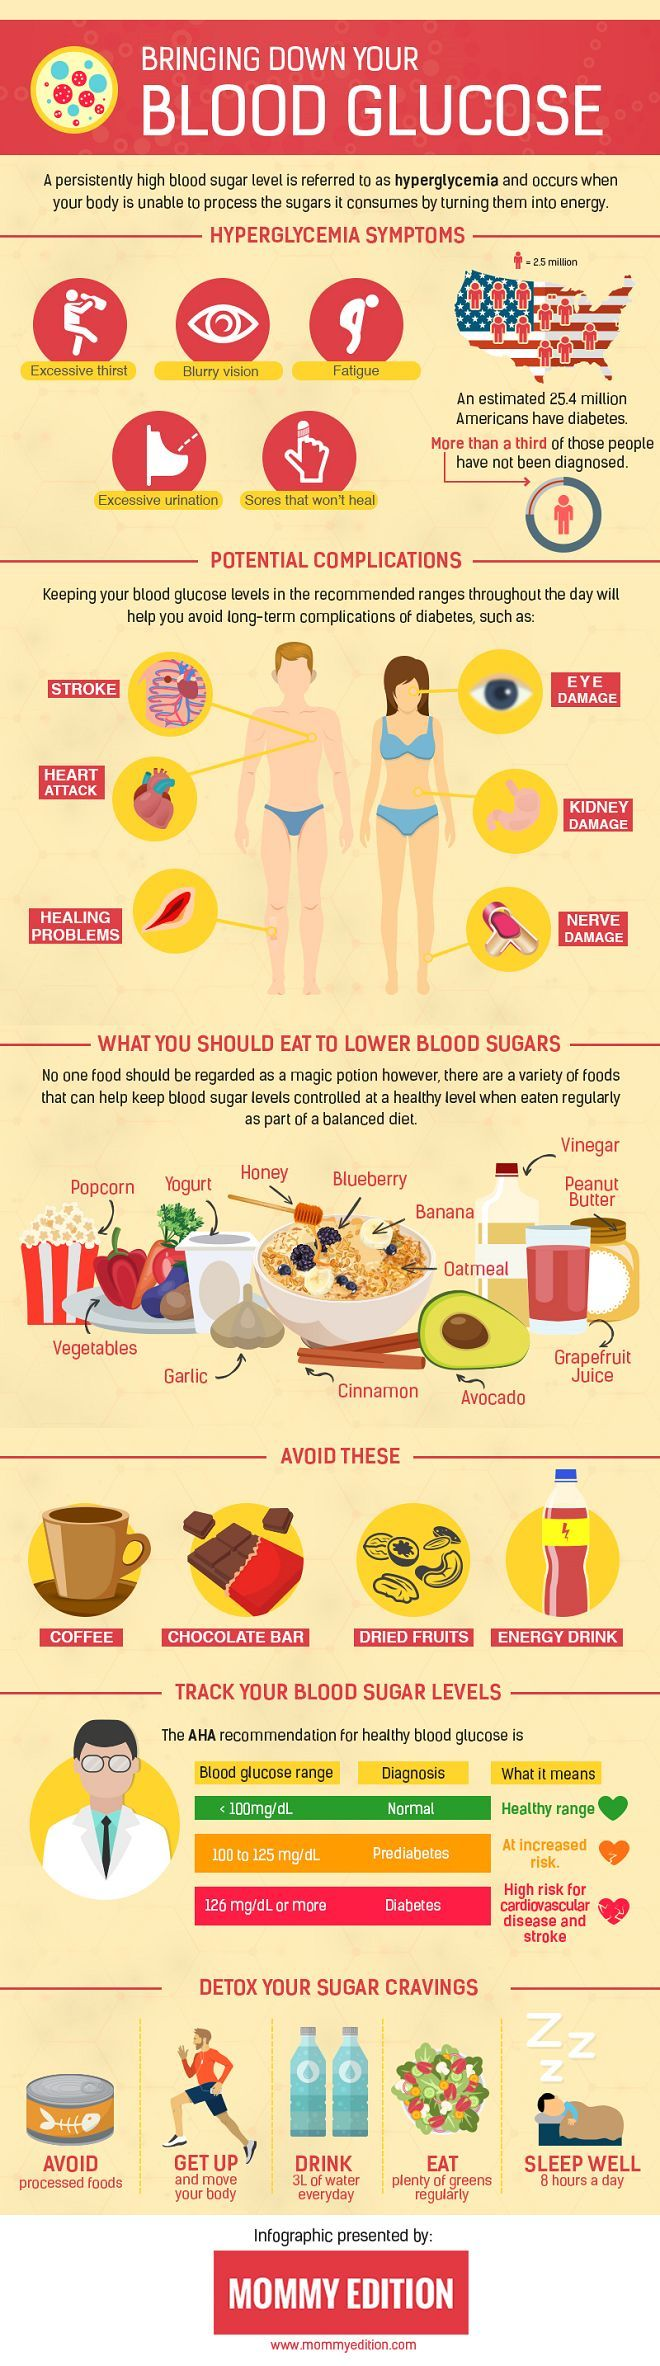 How To Bring Down Your Blood Glucose Levels http://www.mommyedition.com/how-to-lower-your-blood-sugar-levels-naturally